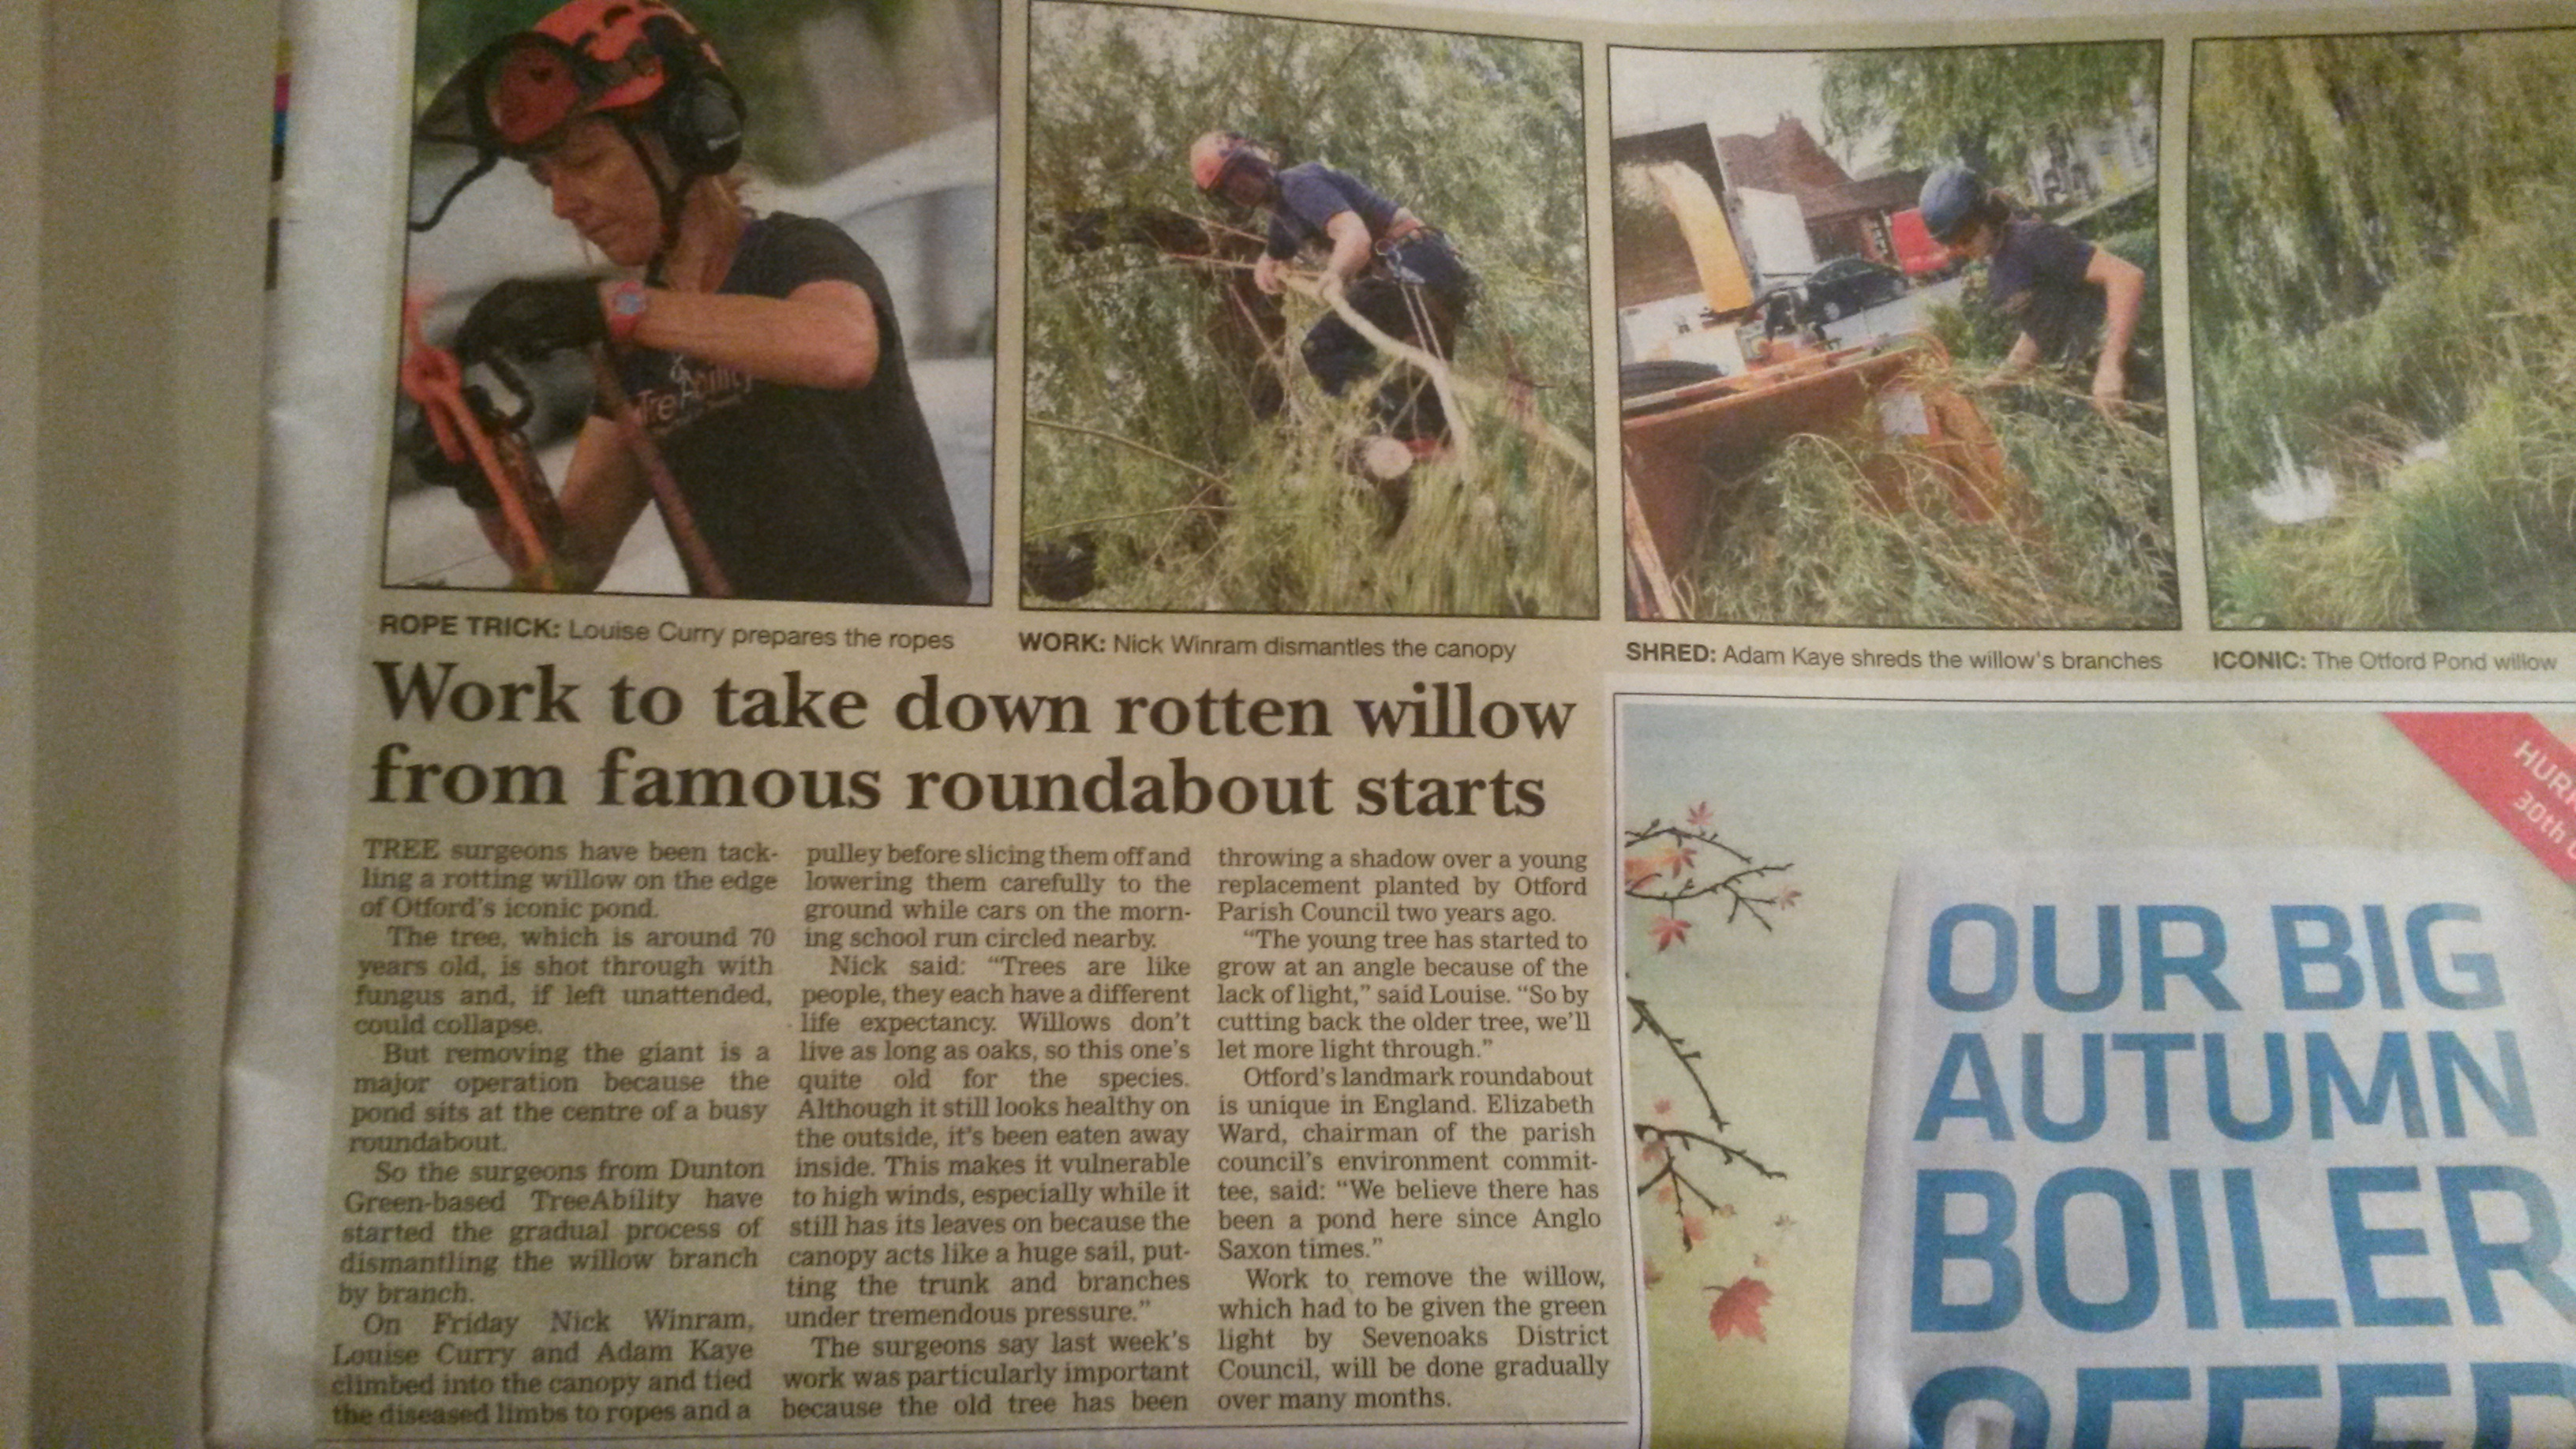 Article about TreeAbility and the Otford Pond.  Pruning the willow tree for Otford Parish Council